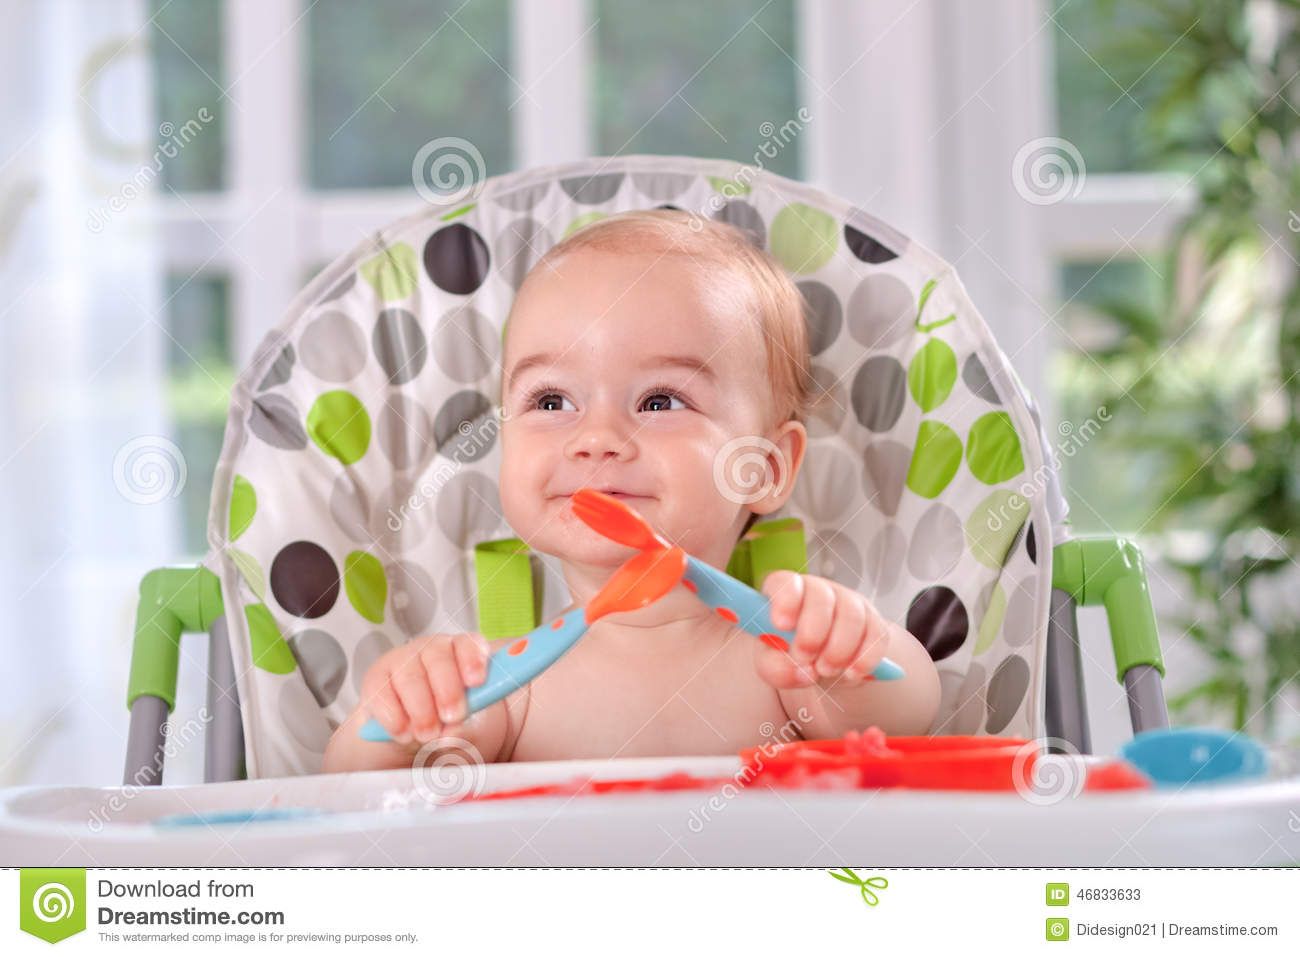 [Image: baby-holding-itself-spoon-fork-beautiful-46833633.jpg]